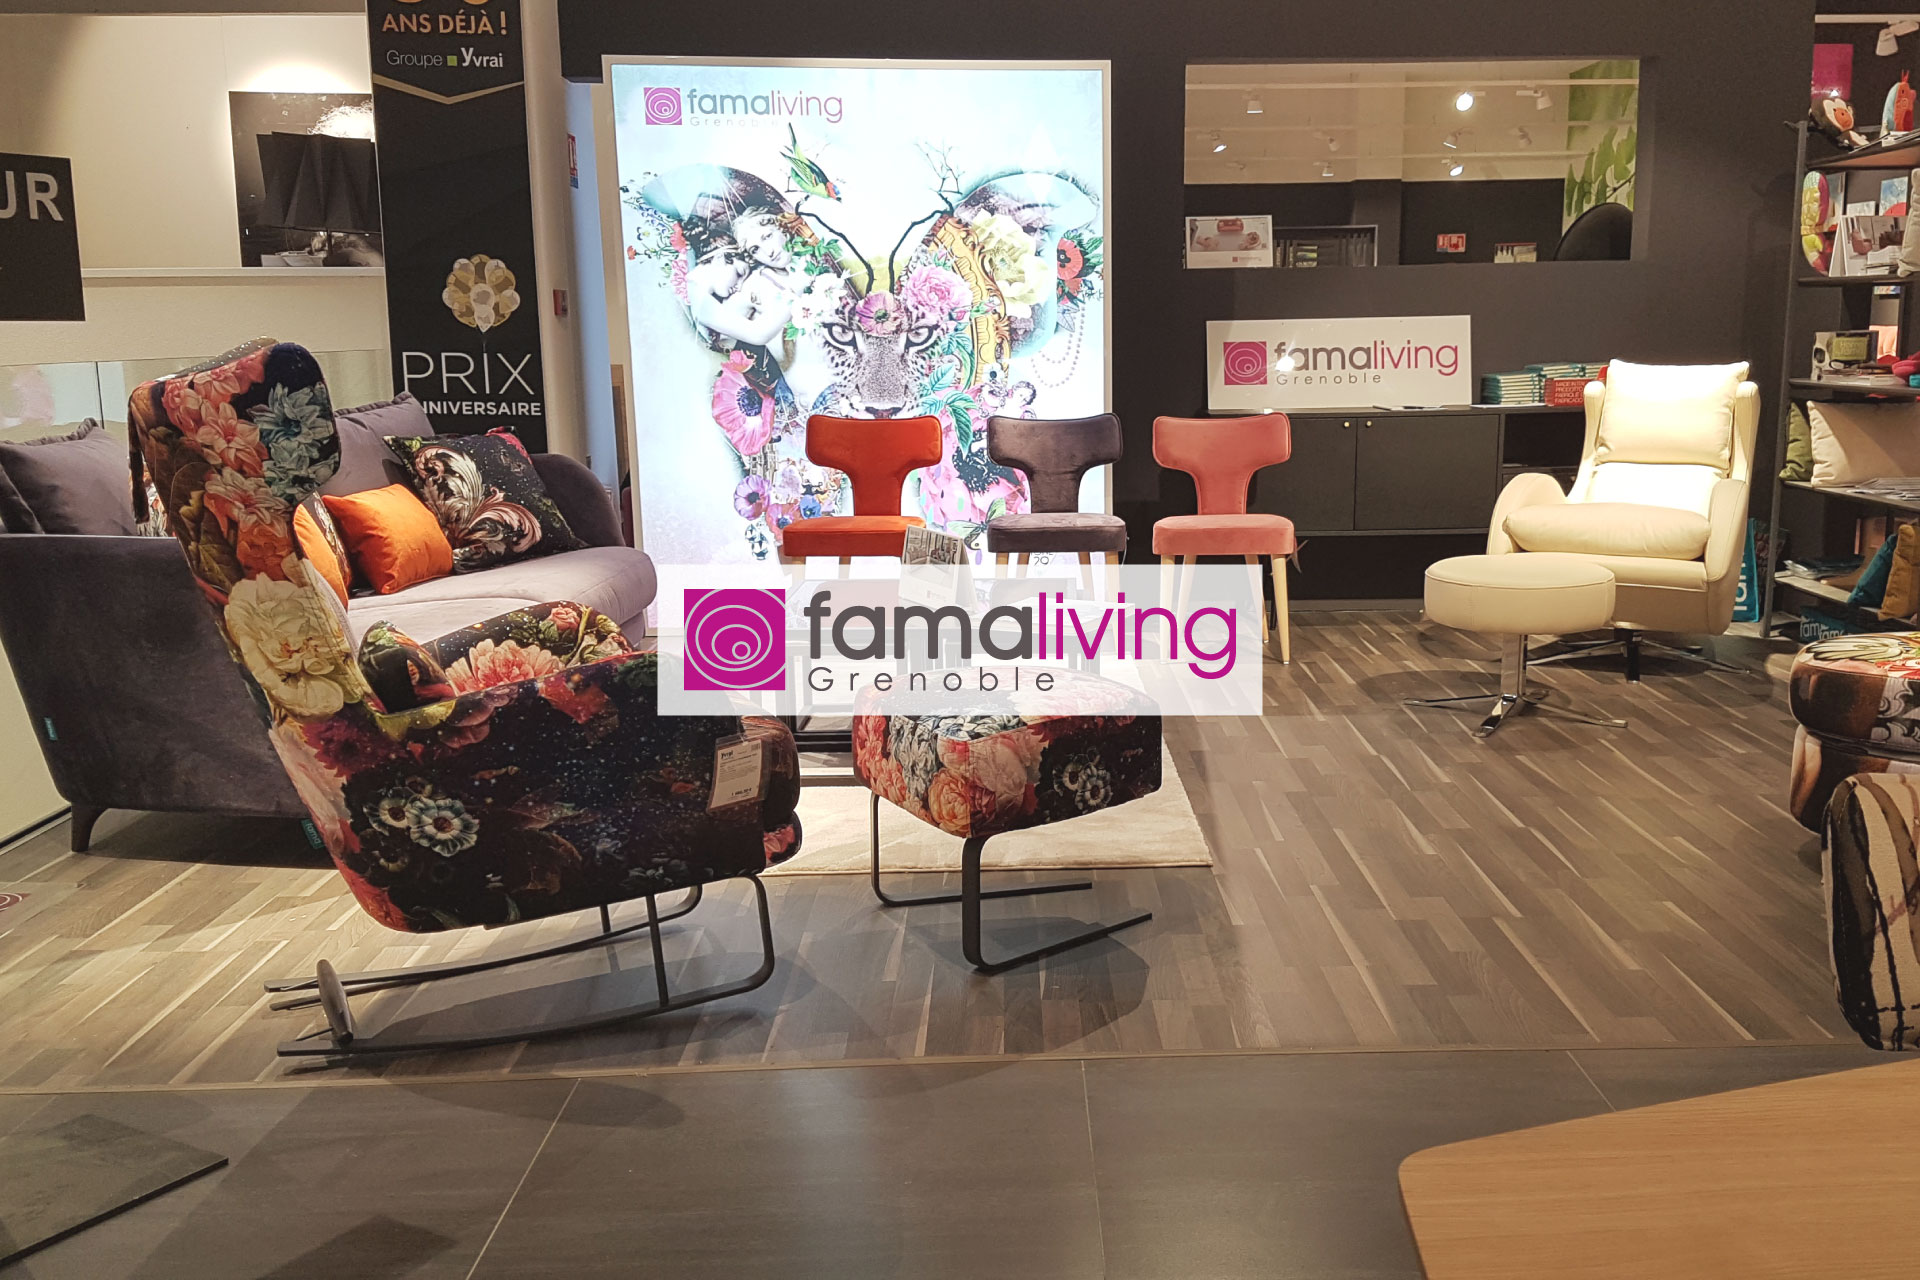 https://www.famaliving.com/grenoble-en